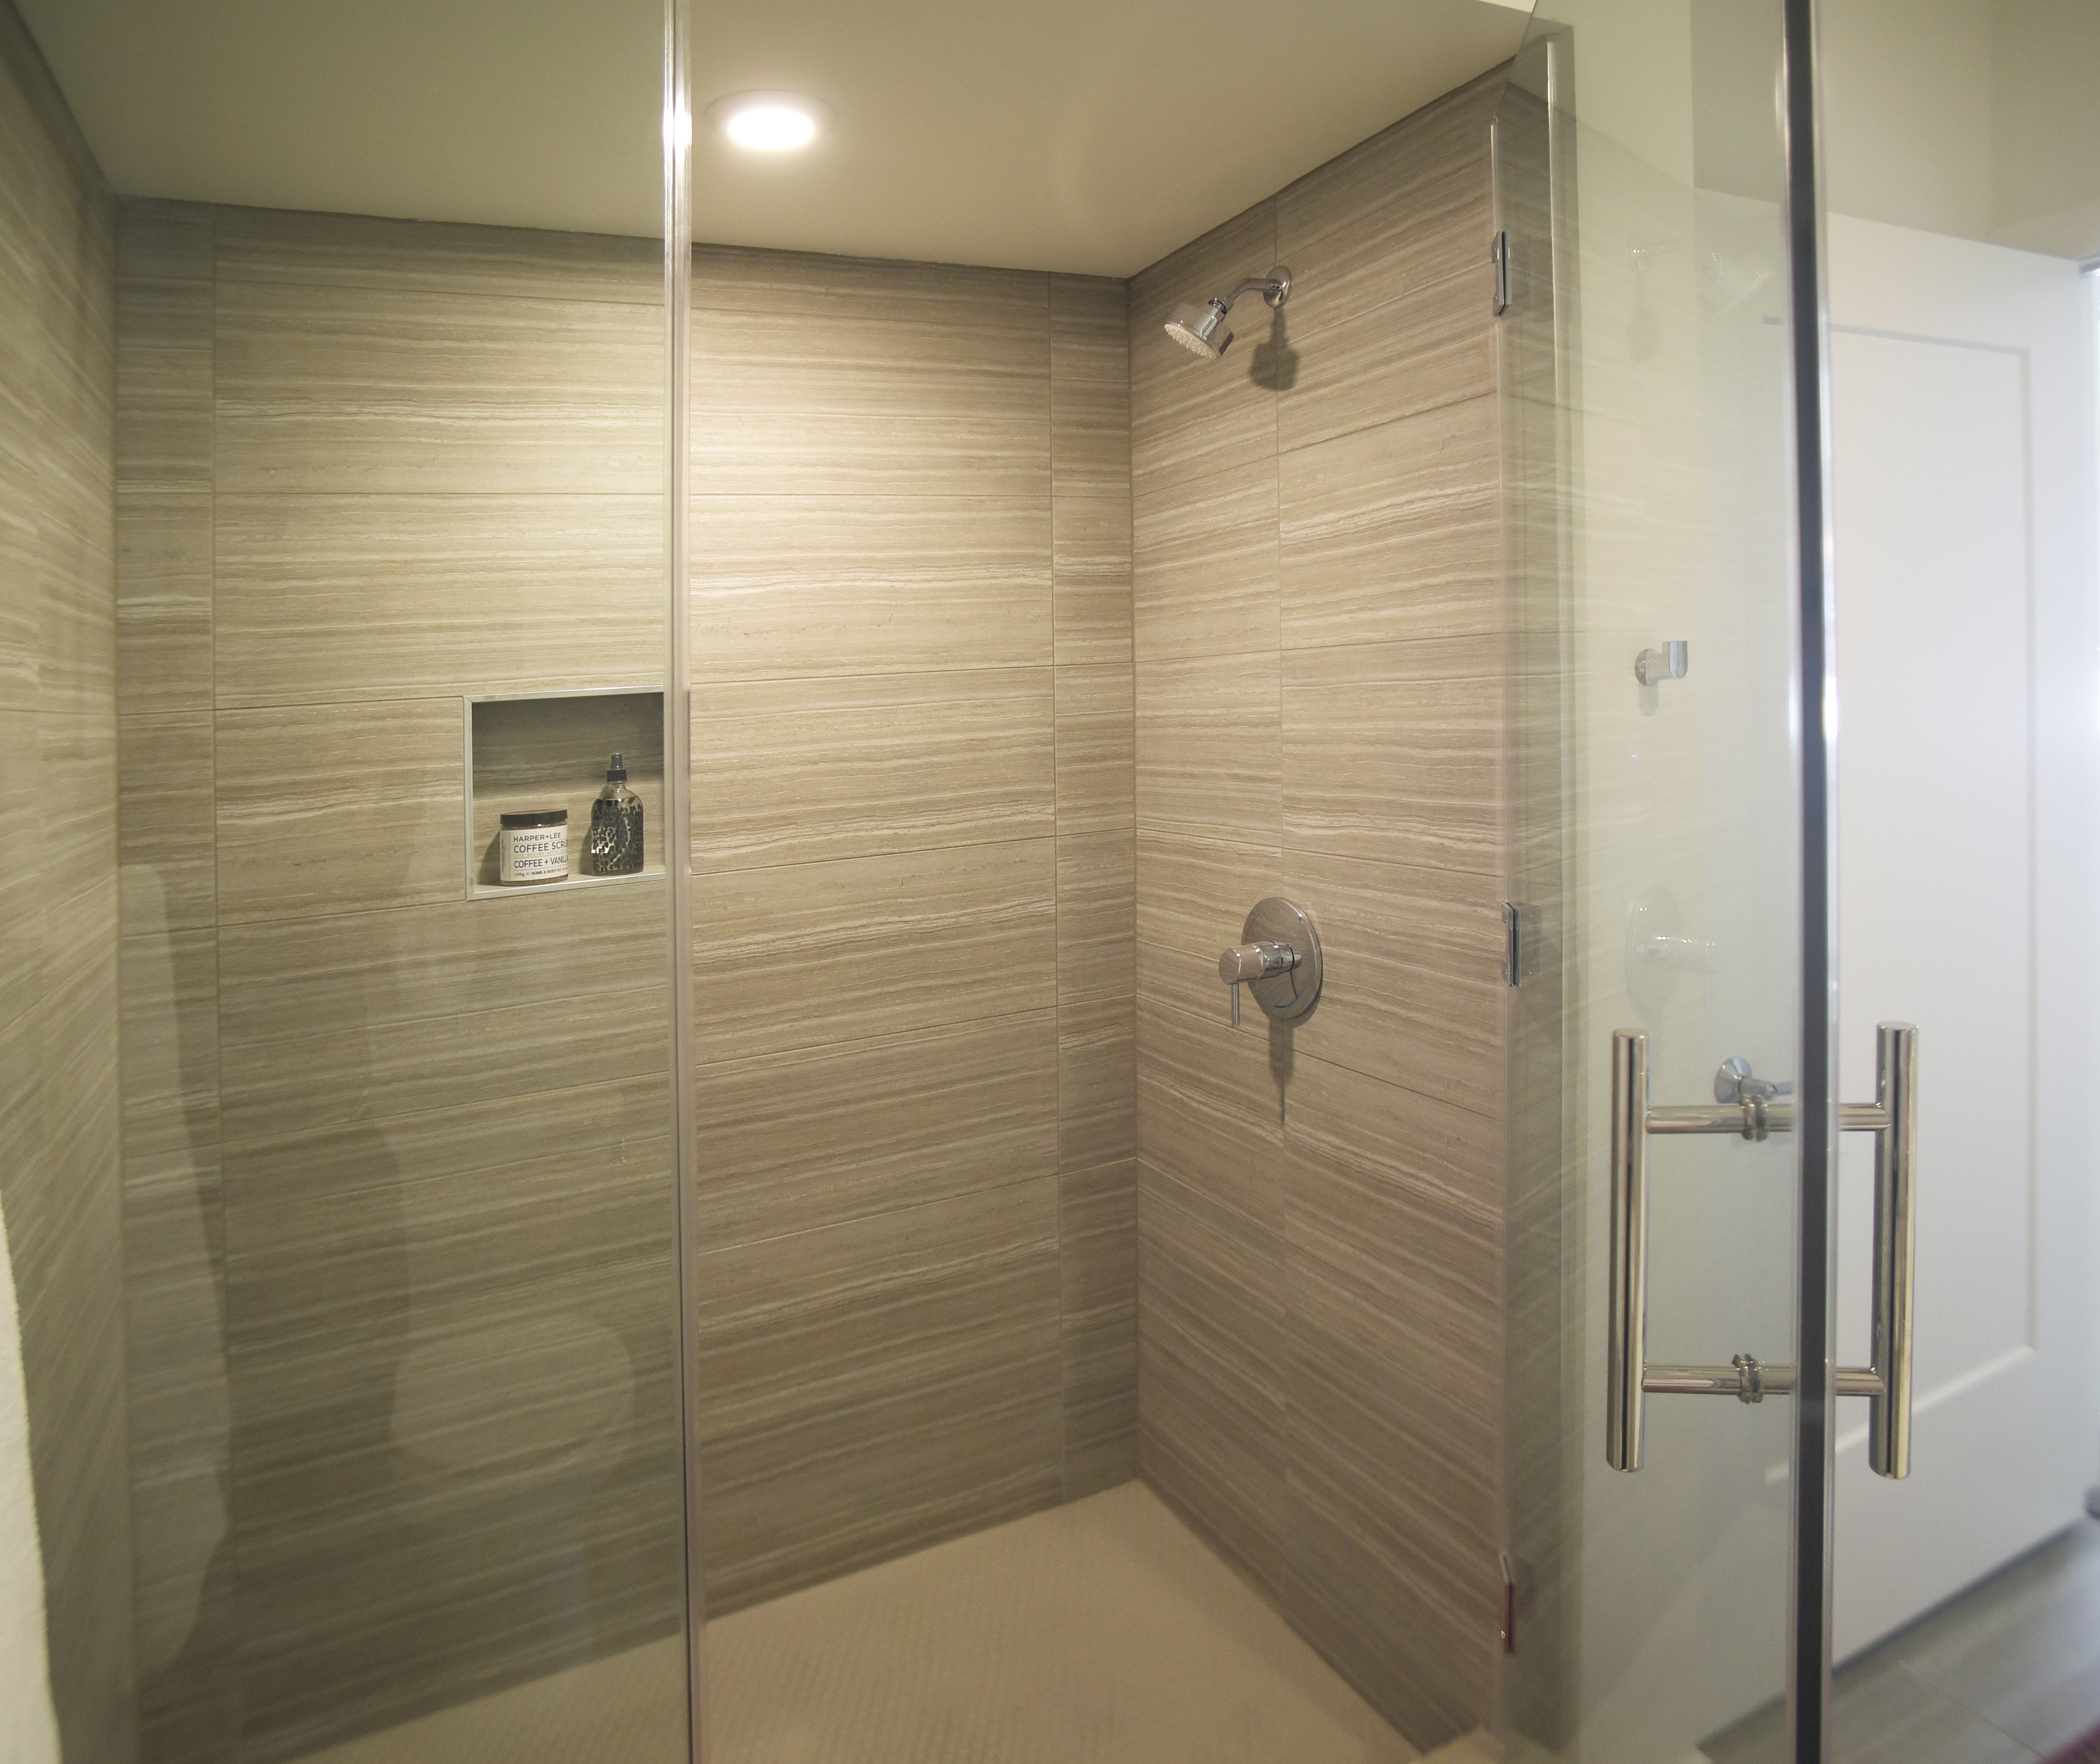 Spur 16 Apartments are furnished with spacious and luxurious showers.